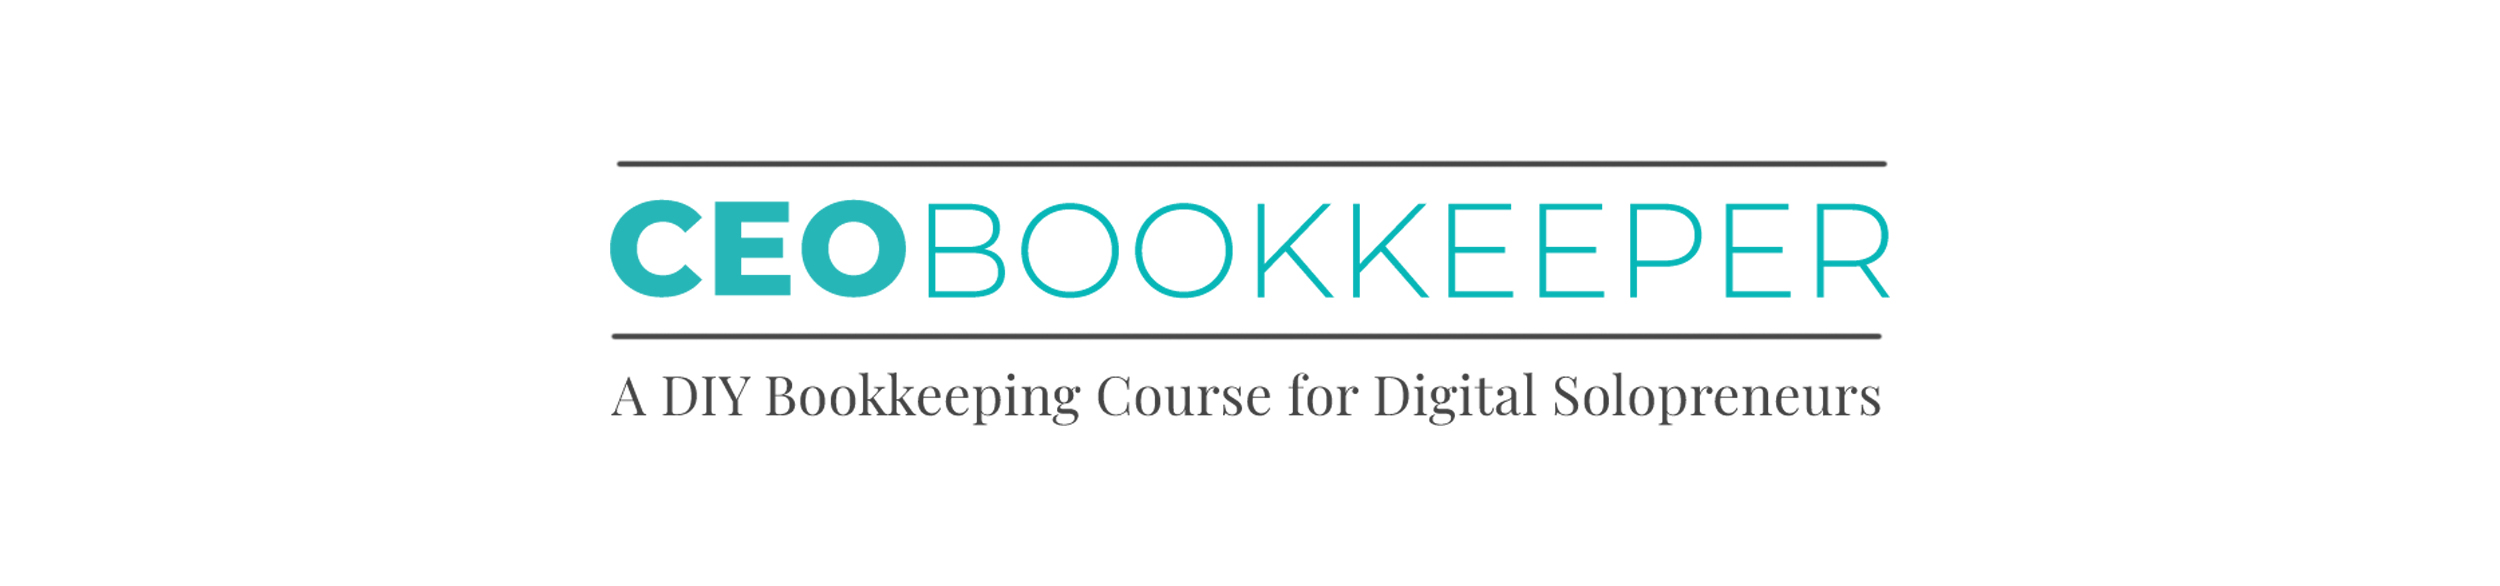 CEO Bookkeeper: A DIY Bookkeeping Course for Digital Solopreneurs